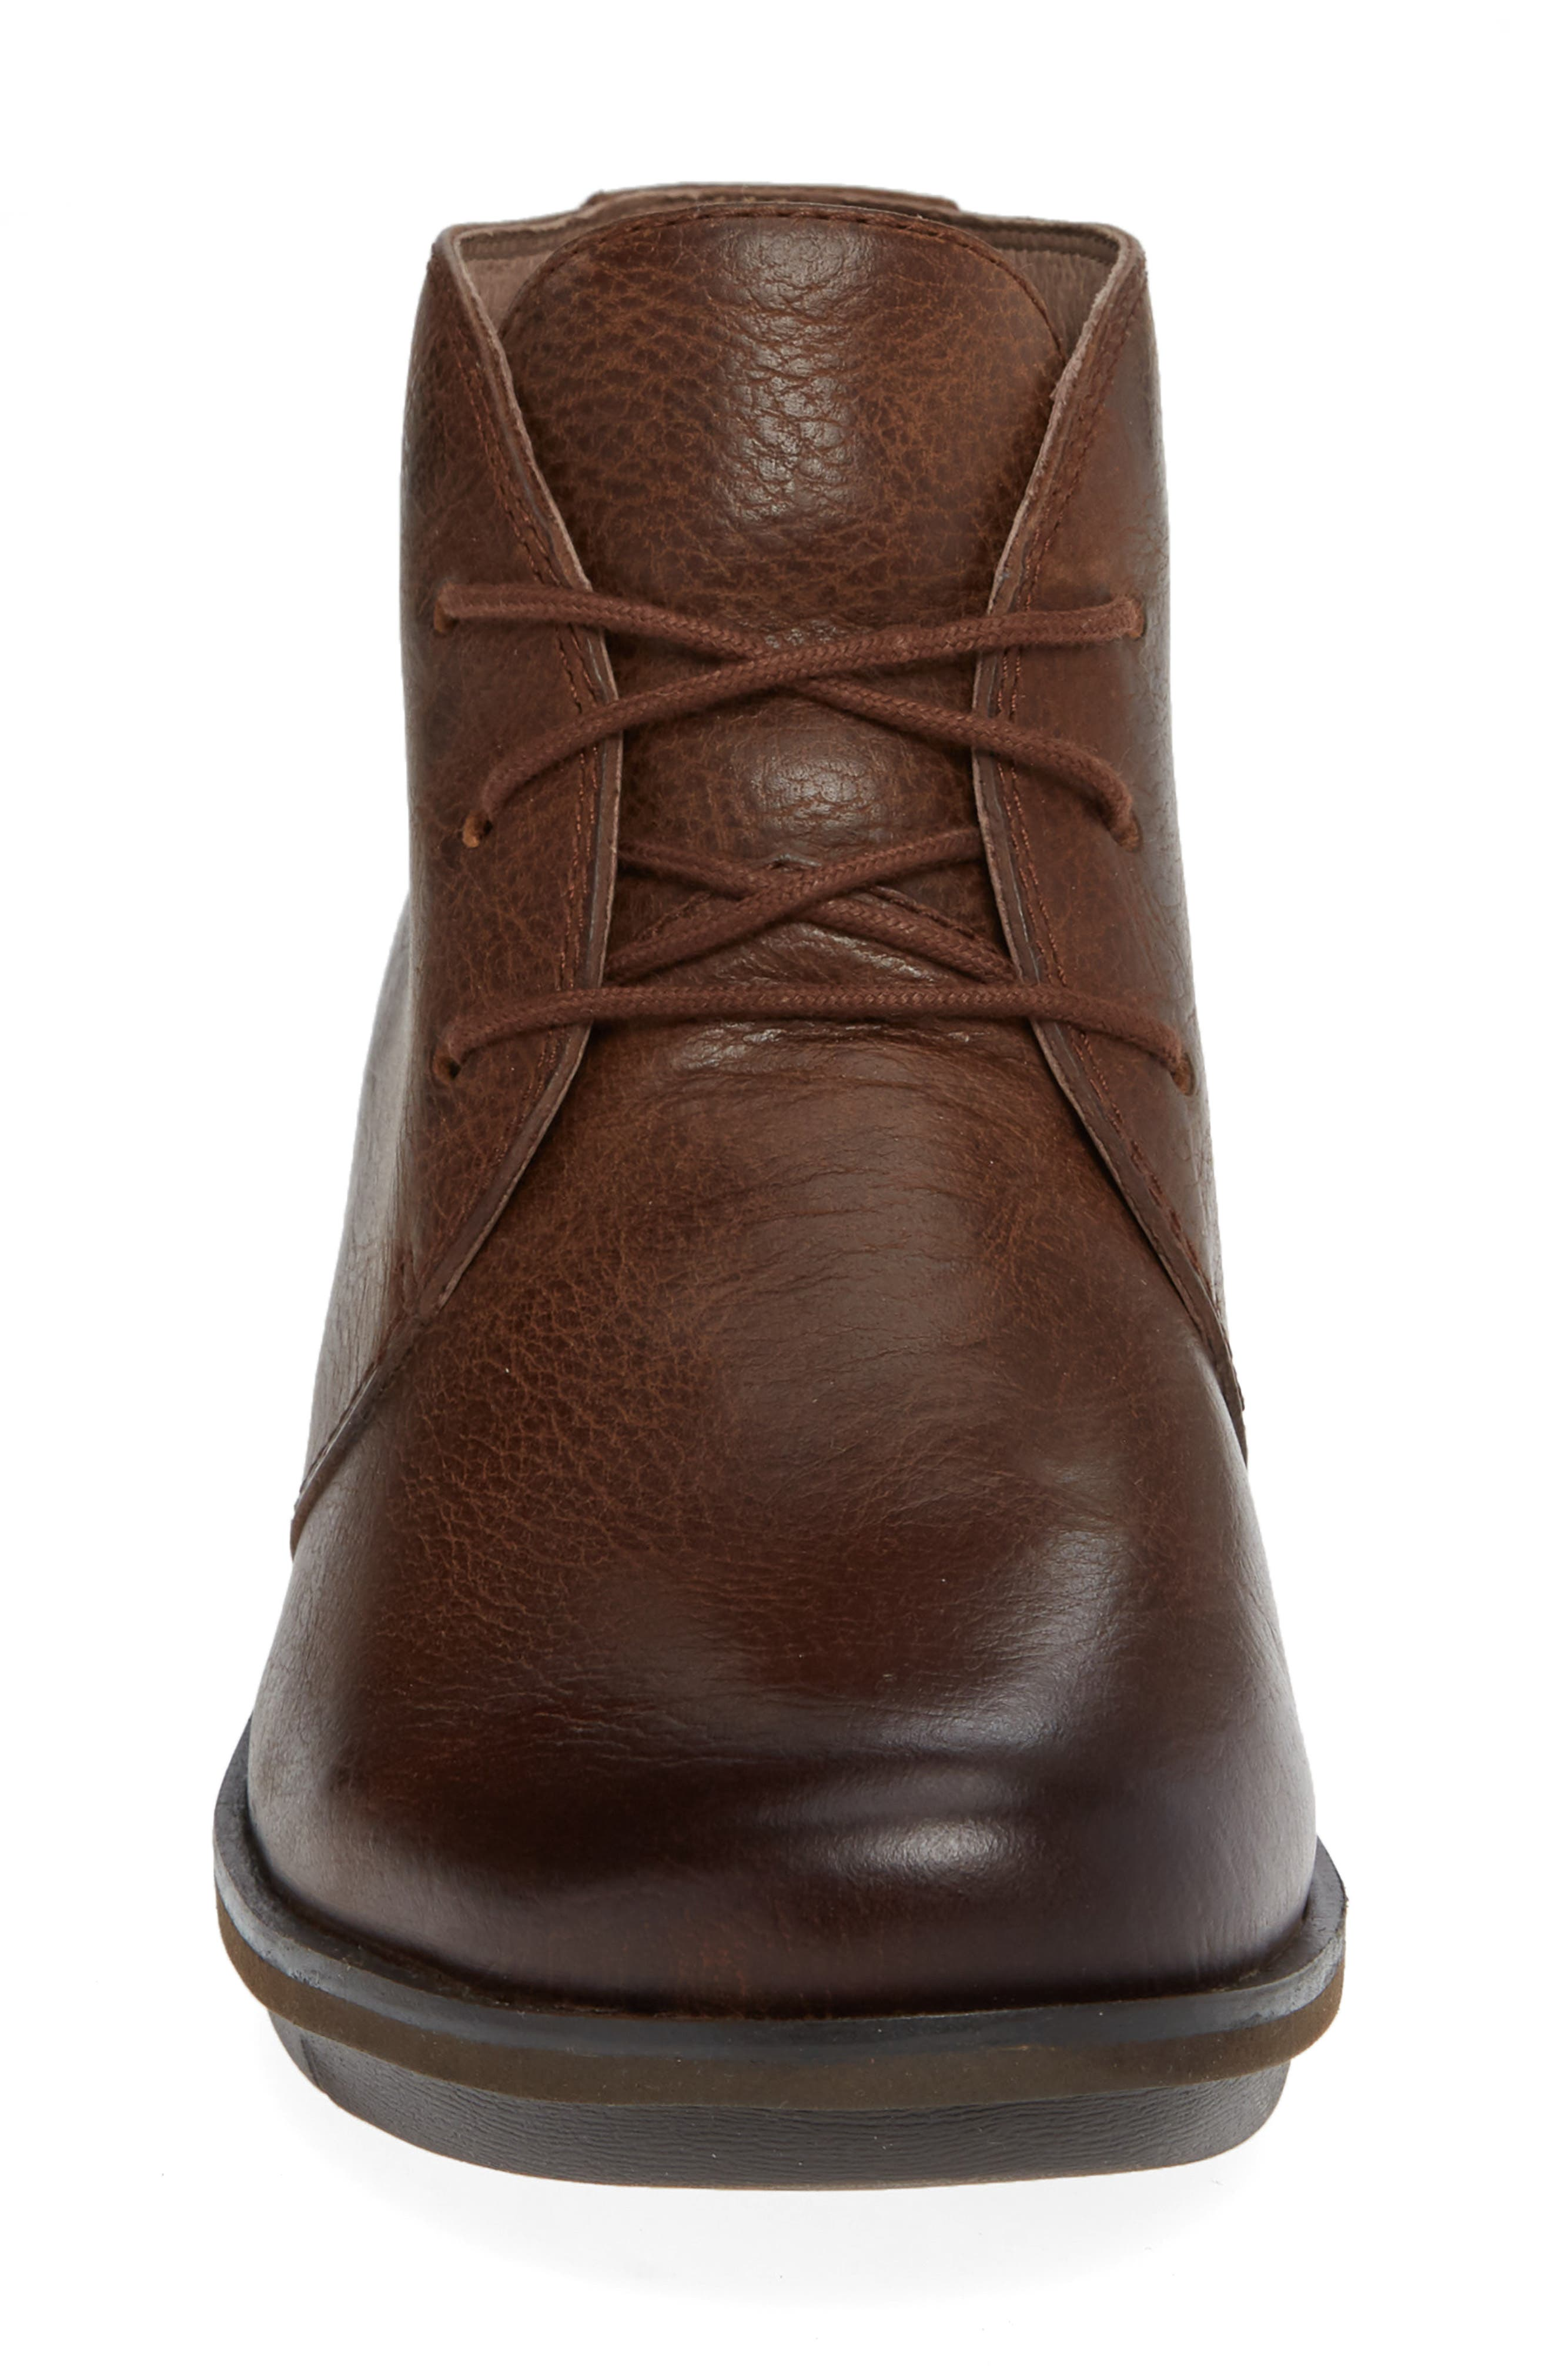 Joy Bootie,                             Alternate thumbnail 4, color,                             Brown Burnished Nubuck Leather